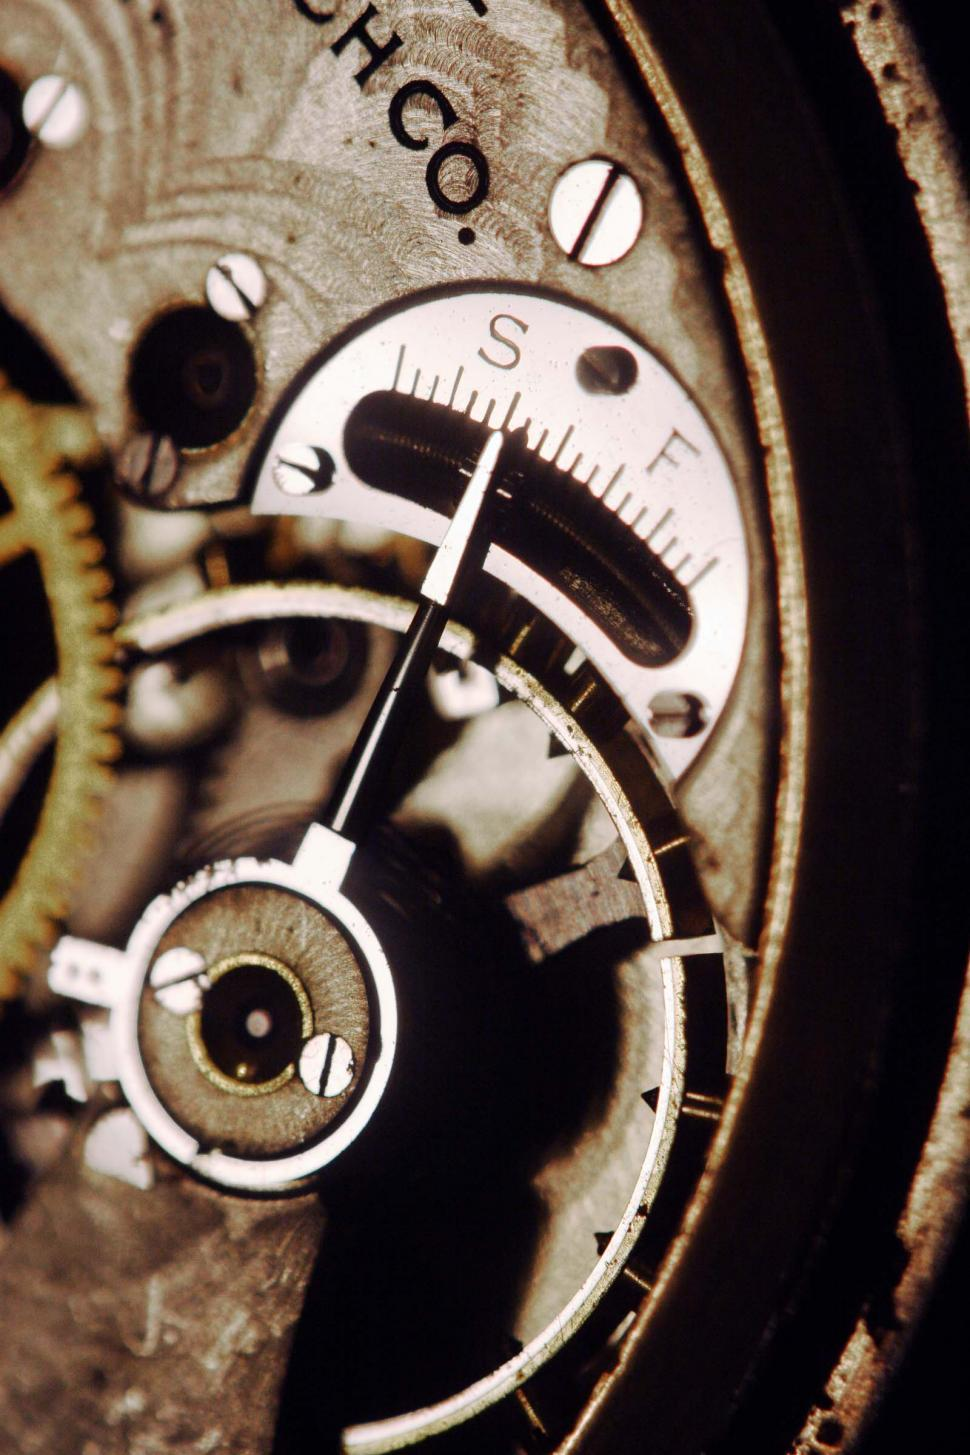 Download Free Stock HD Photo of Pocket watch inner workings Online